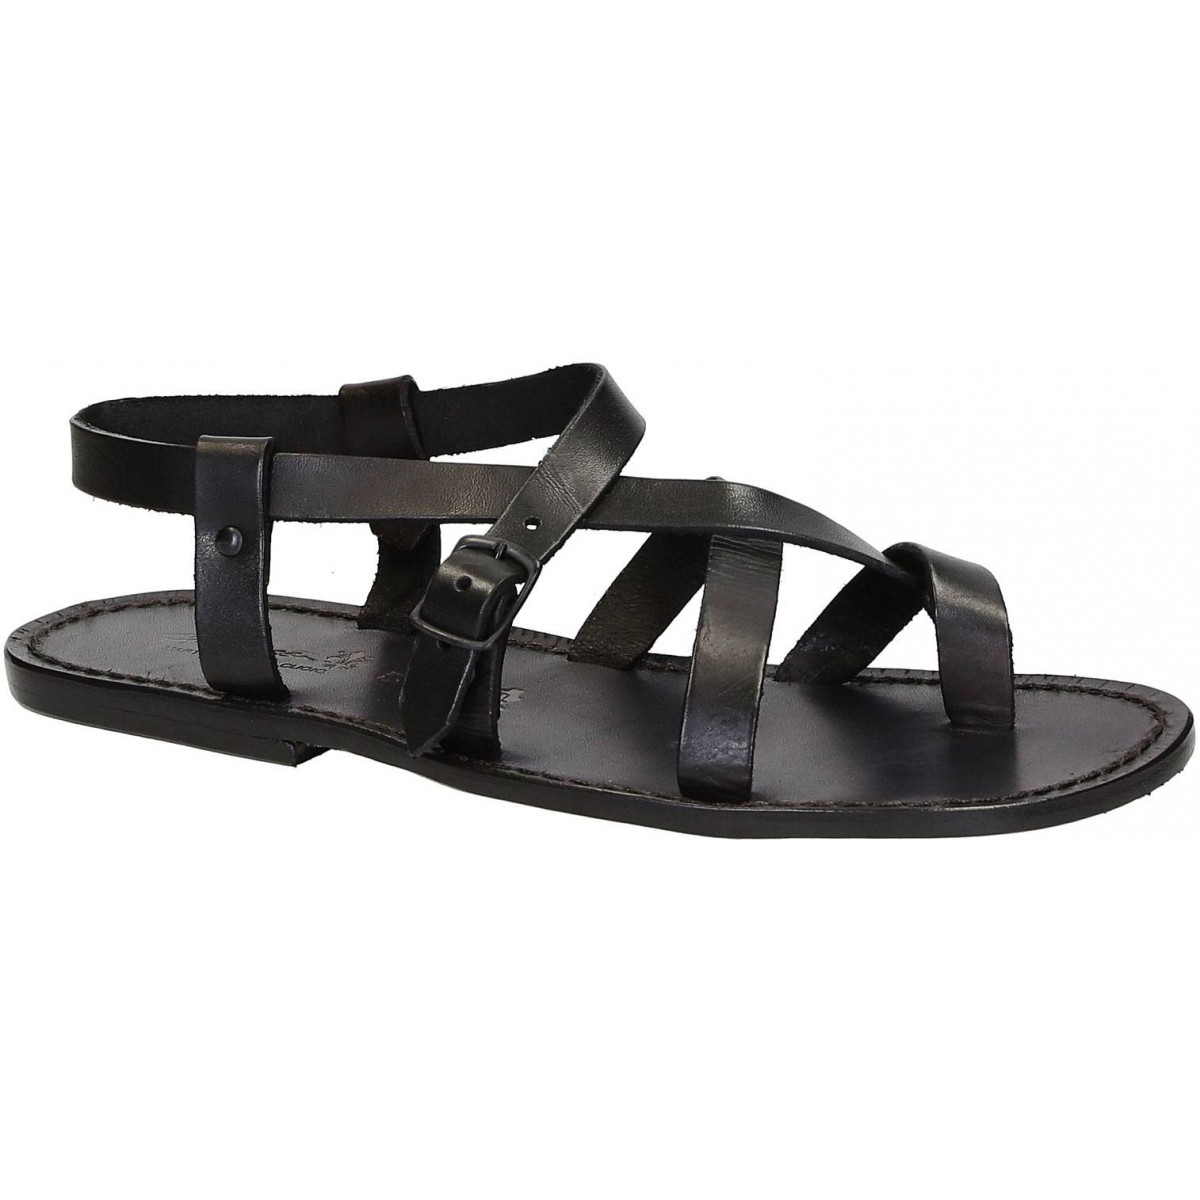 eea9516be1f1c Gladiator sandals for men in black real calf leather. Loading zoom